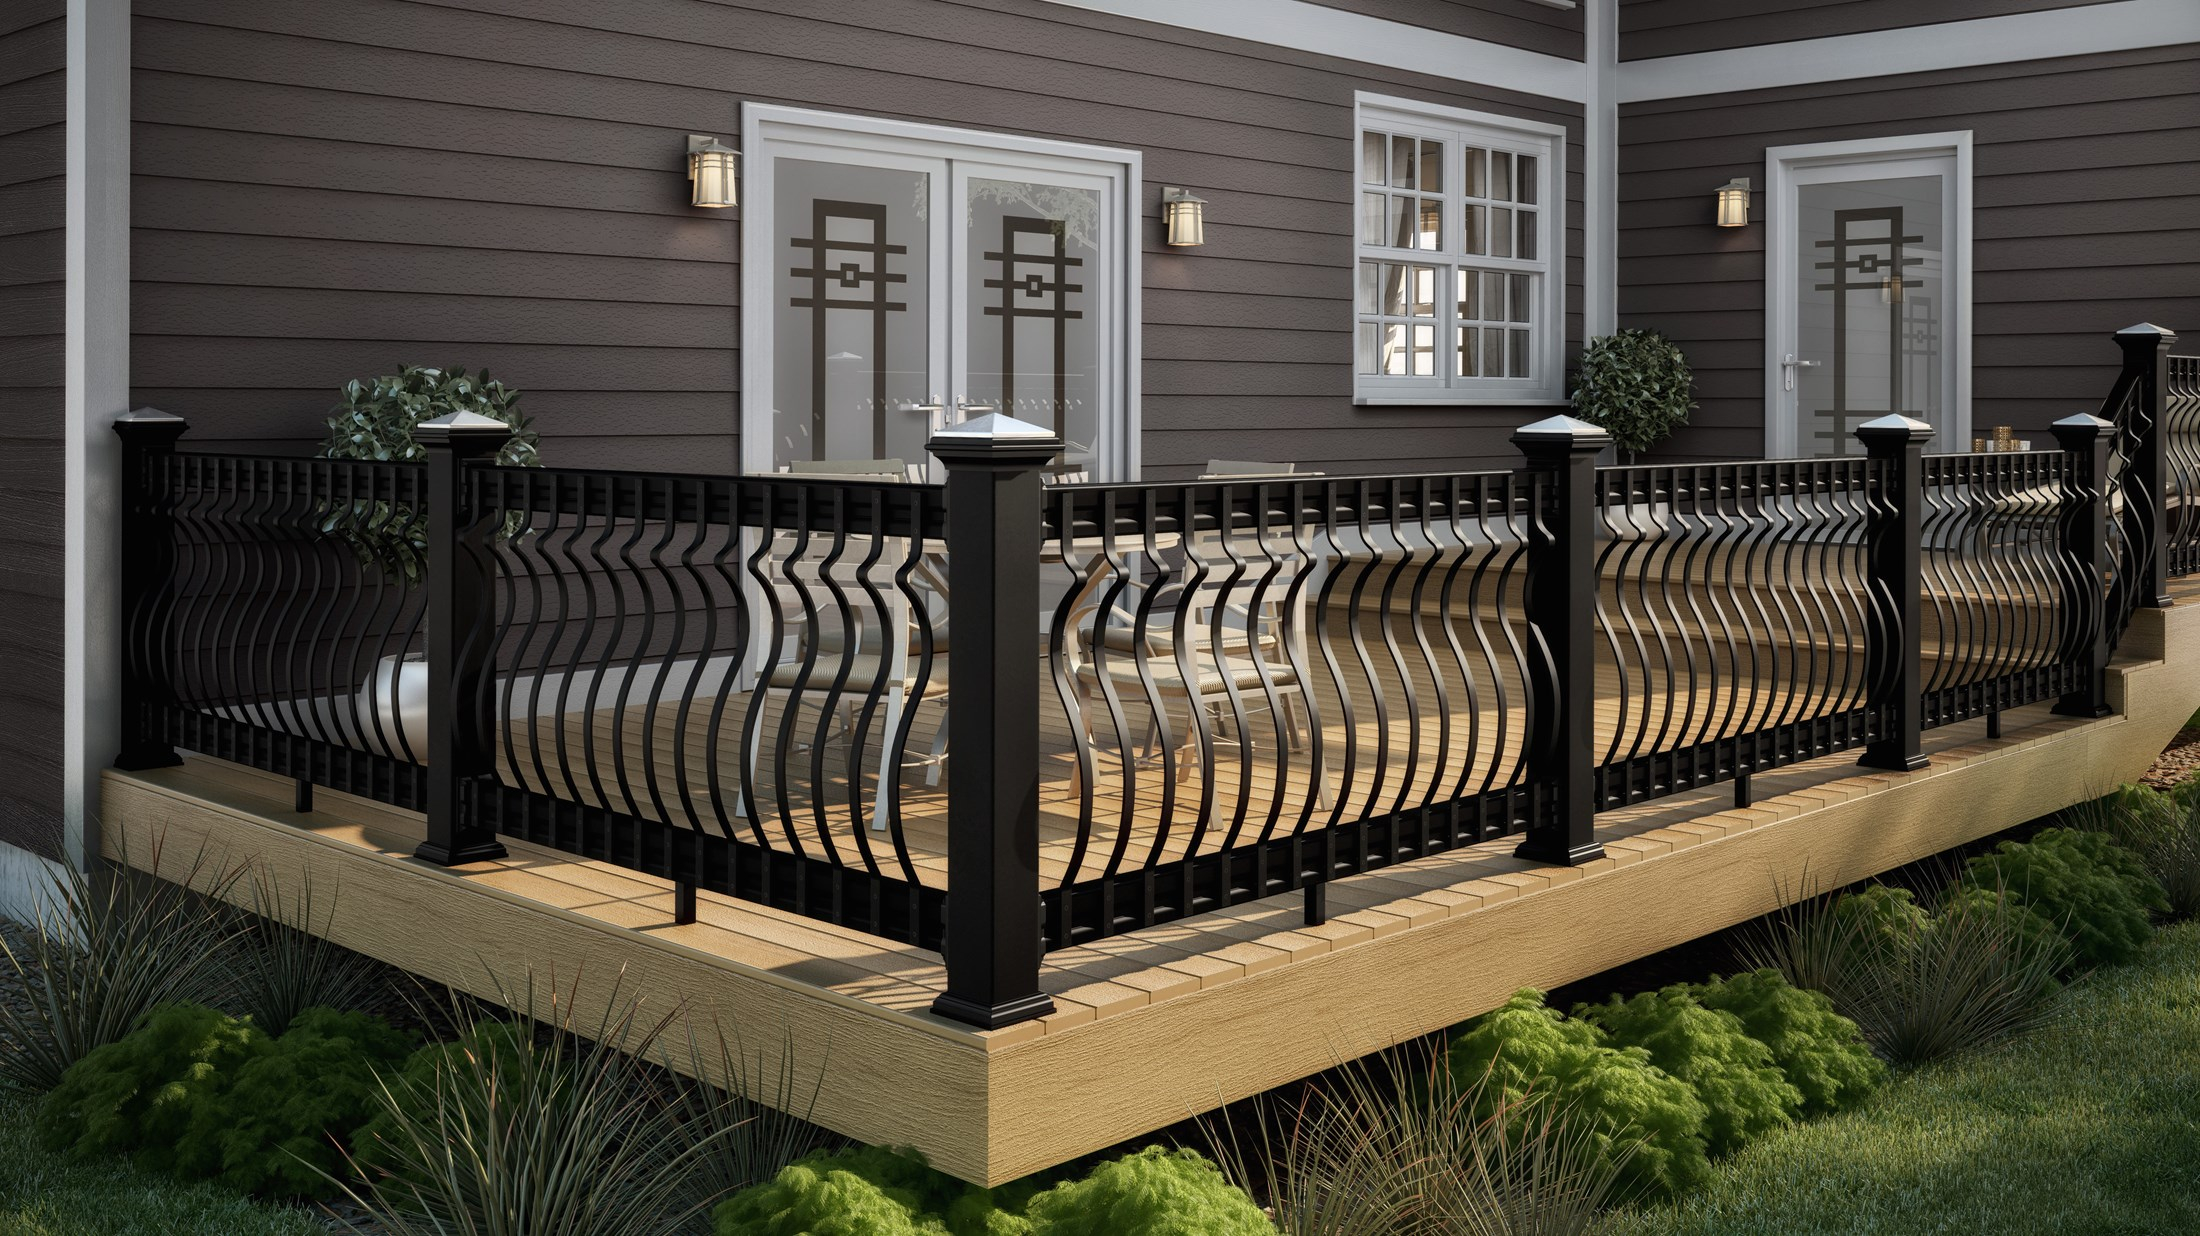 Pictures Of Deck Railings Wood Deck Designs Wood Deck Railing Inside Sizing  2200 X 1236